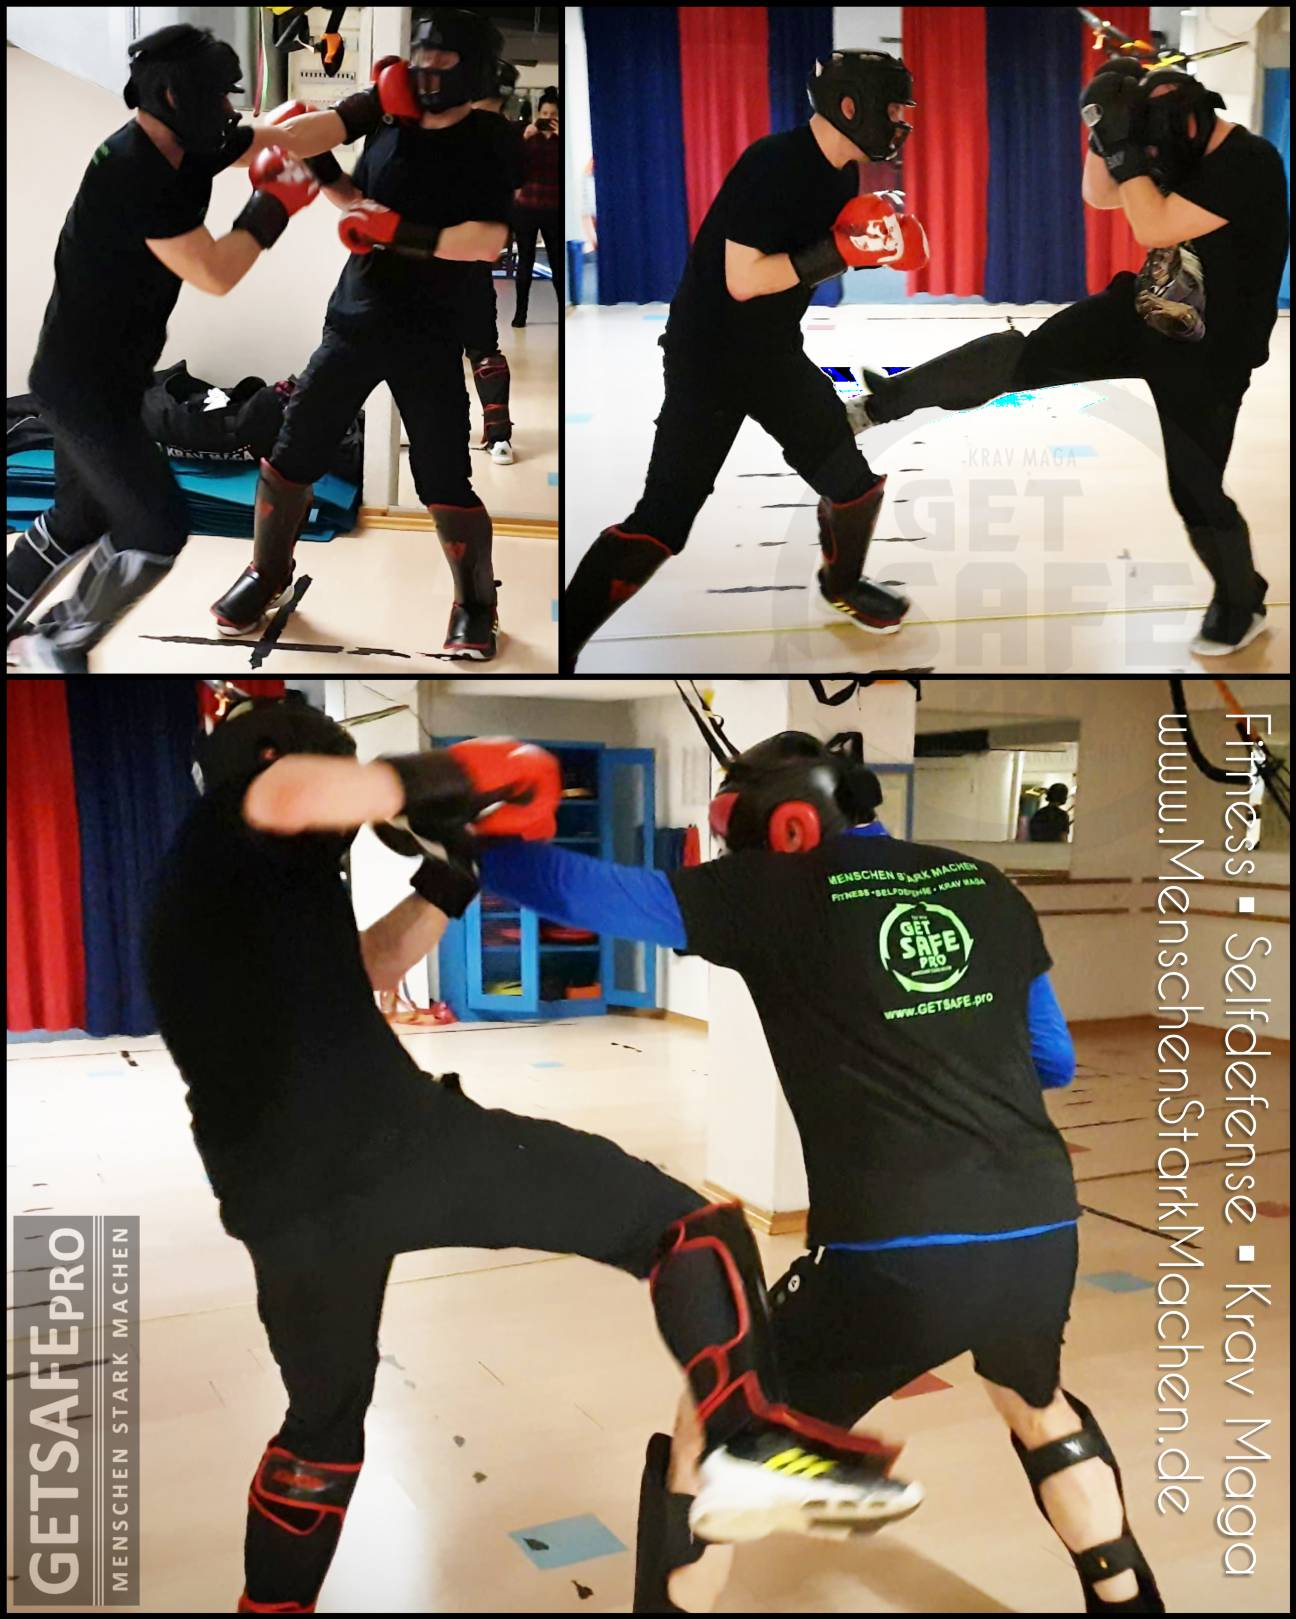 GETSAFEpro Krav Maga Training Mainz Selbstverteidigung Fitness-Center Mainz City (80)